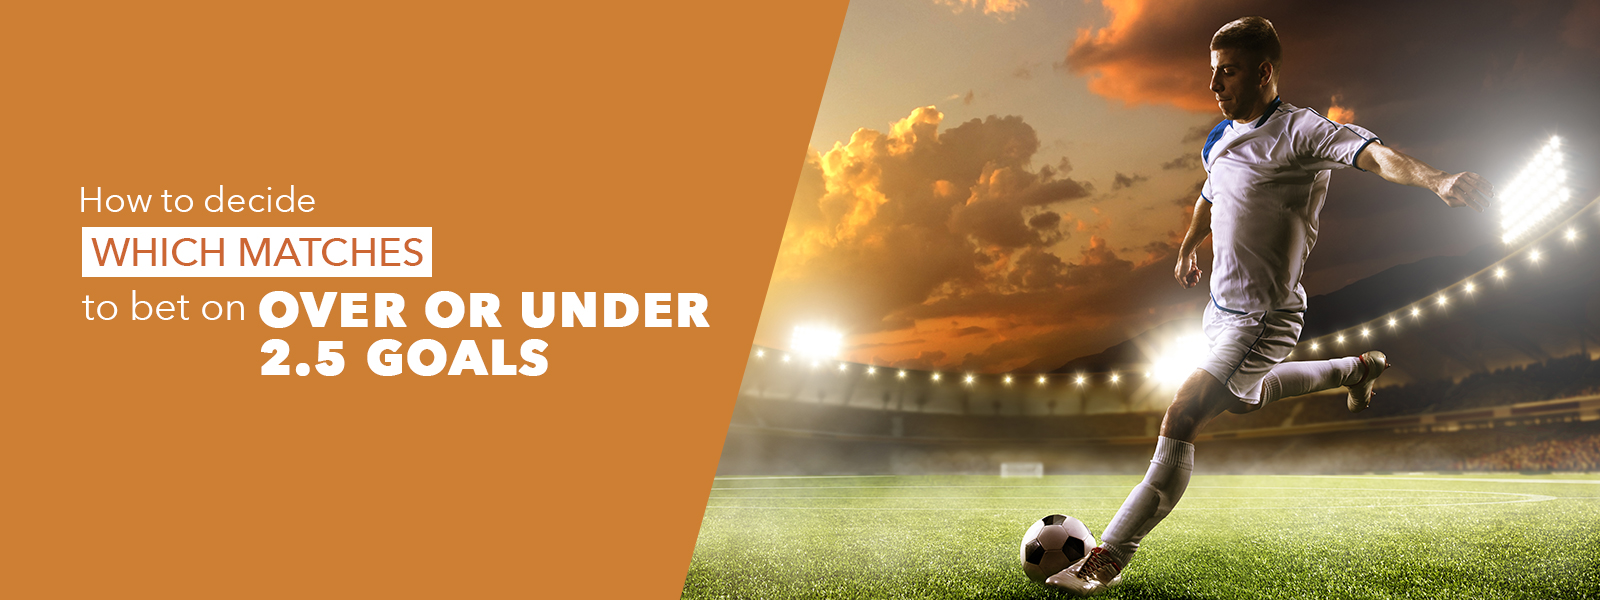 How to decide which matches to bet on over or under 2.5 goals